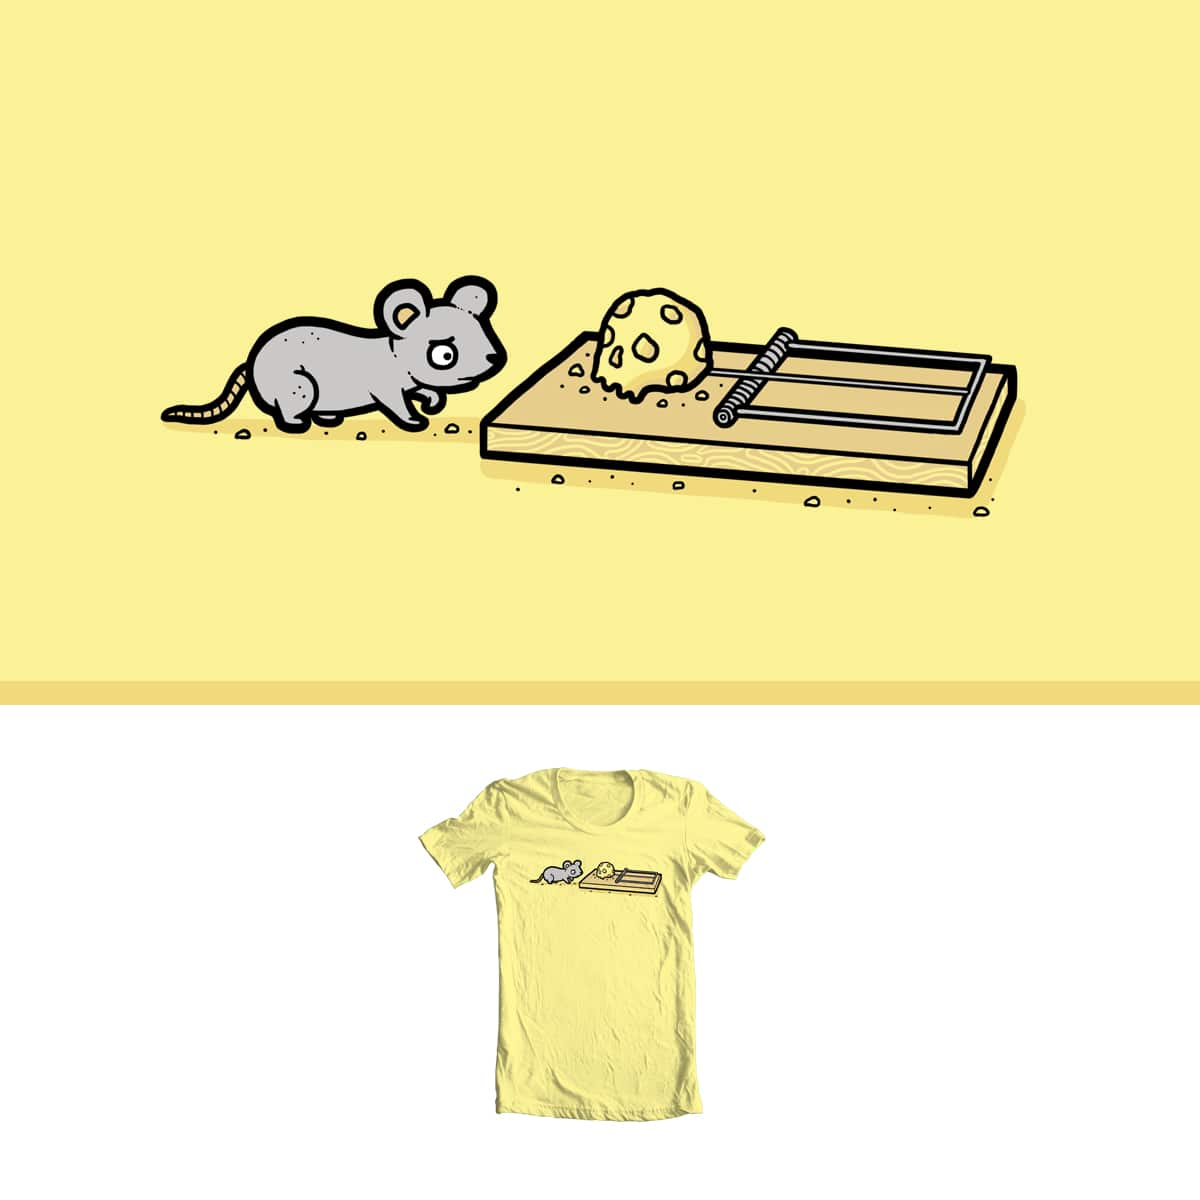 Mouse trap by randyotter3000 on Threadless